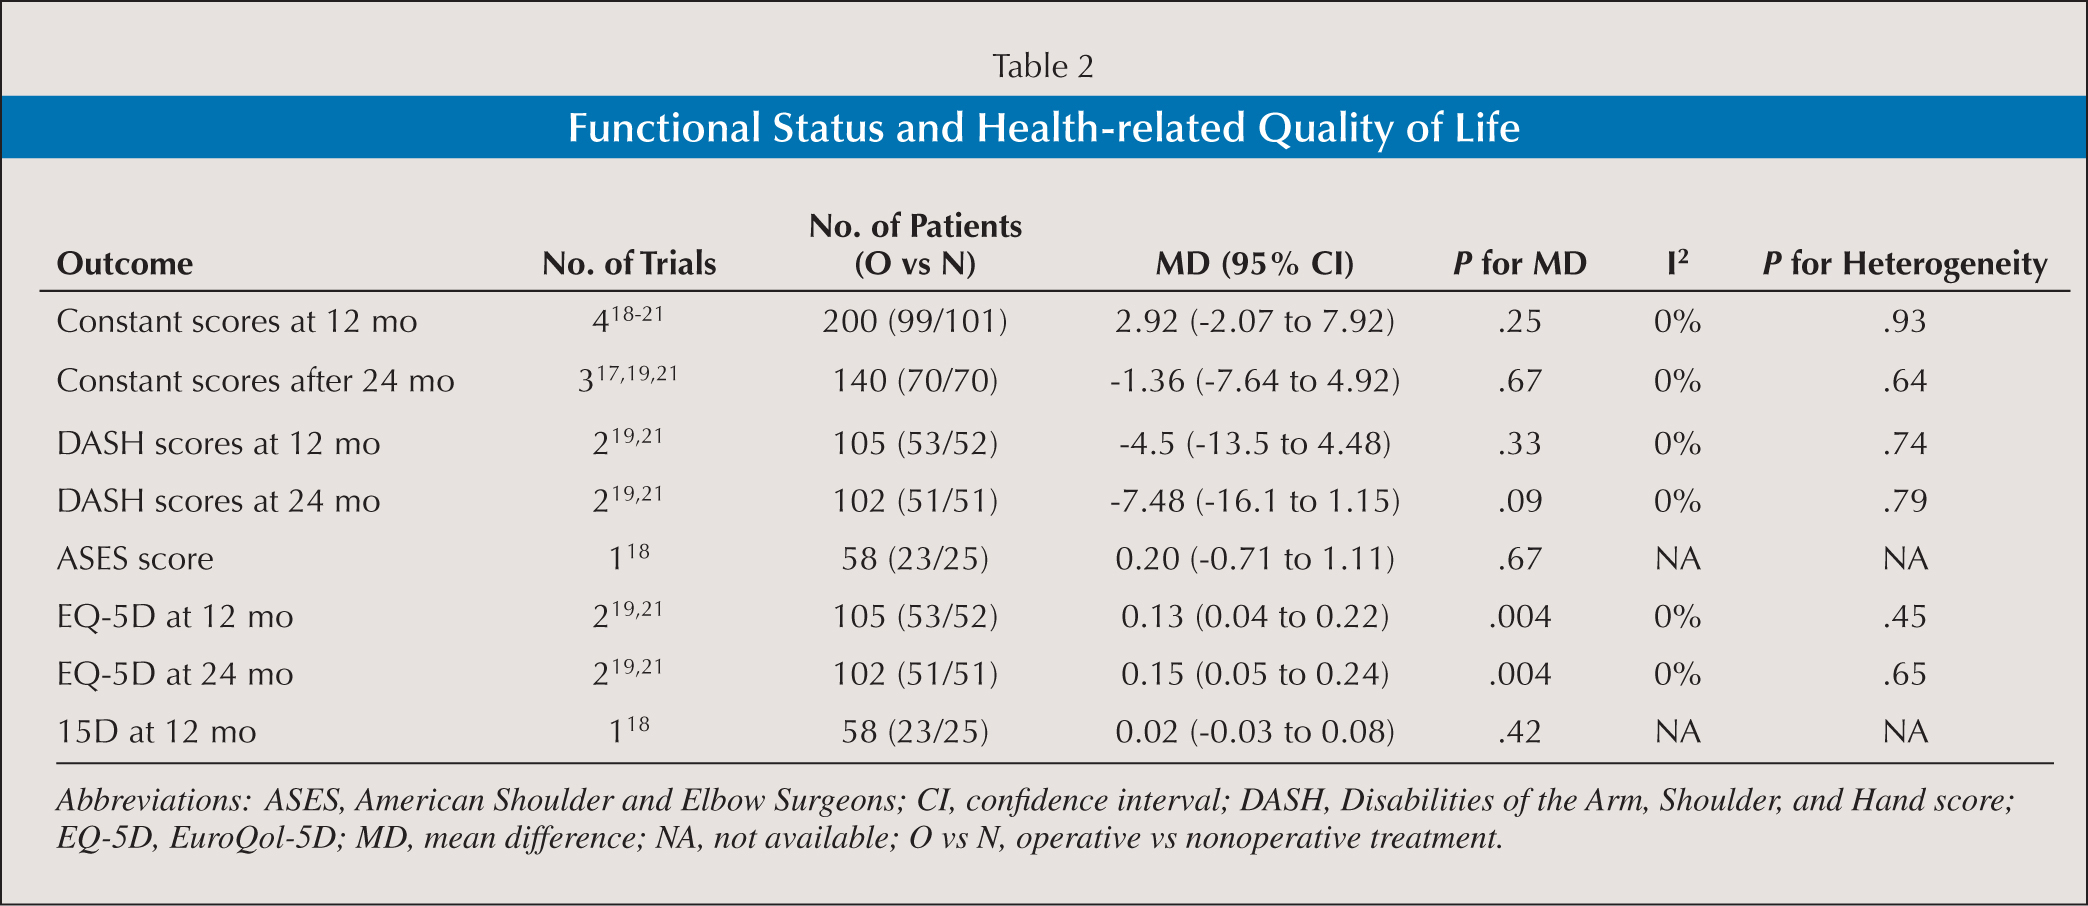 Functional Status and Health-related Quality of Life